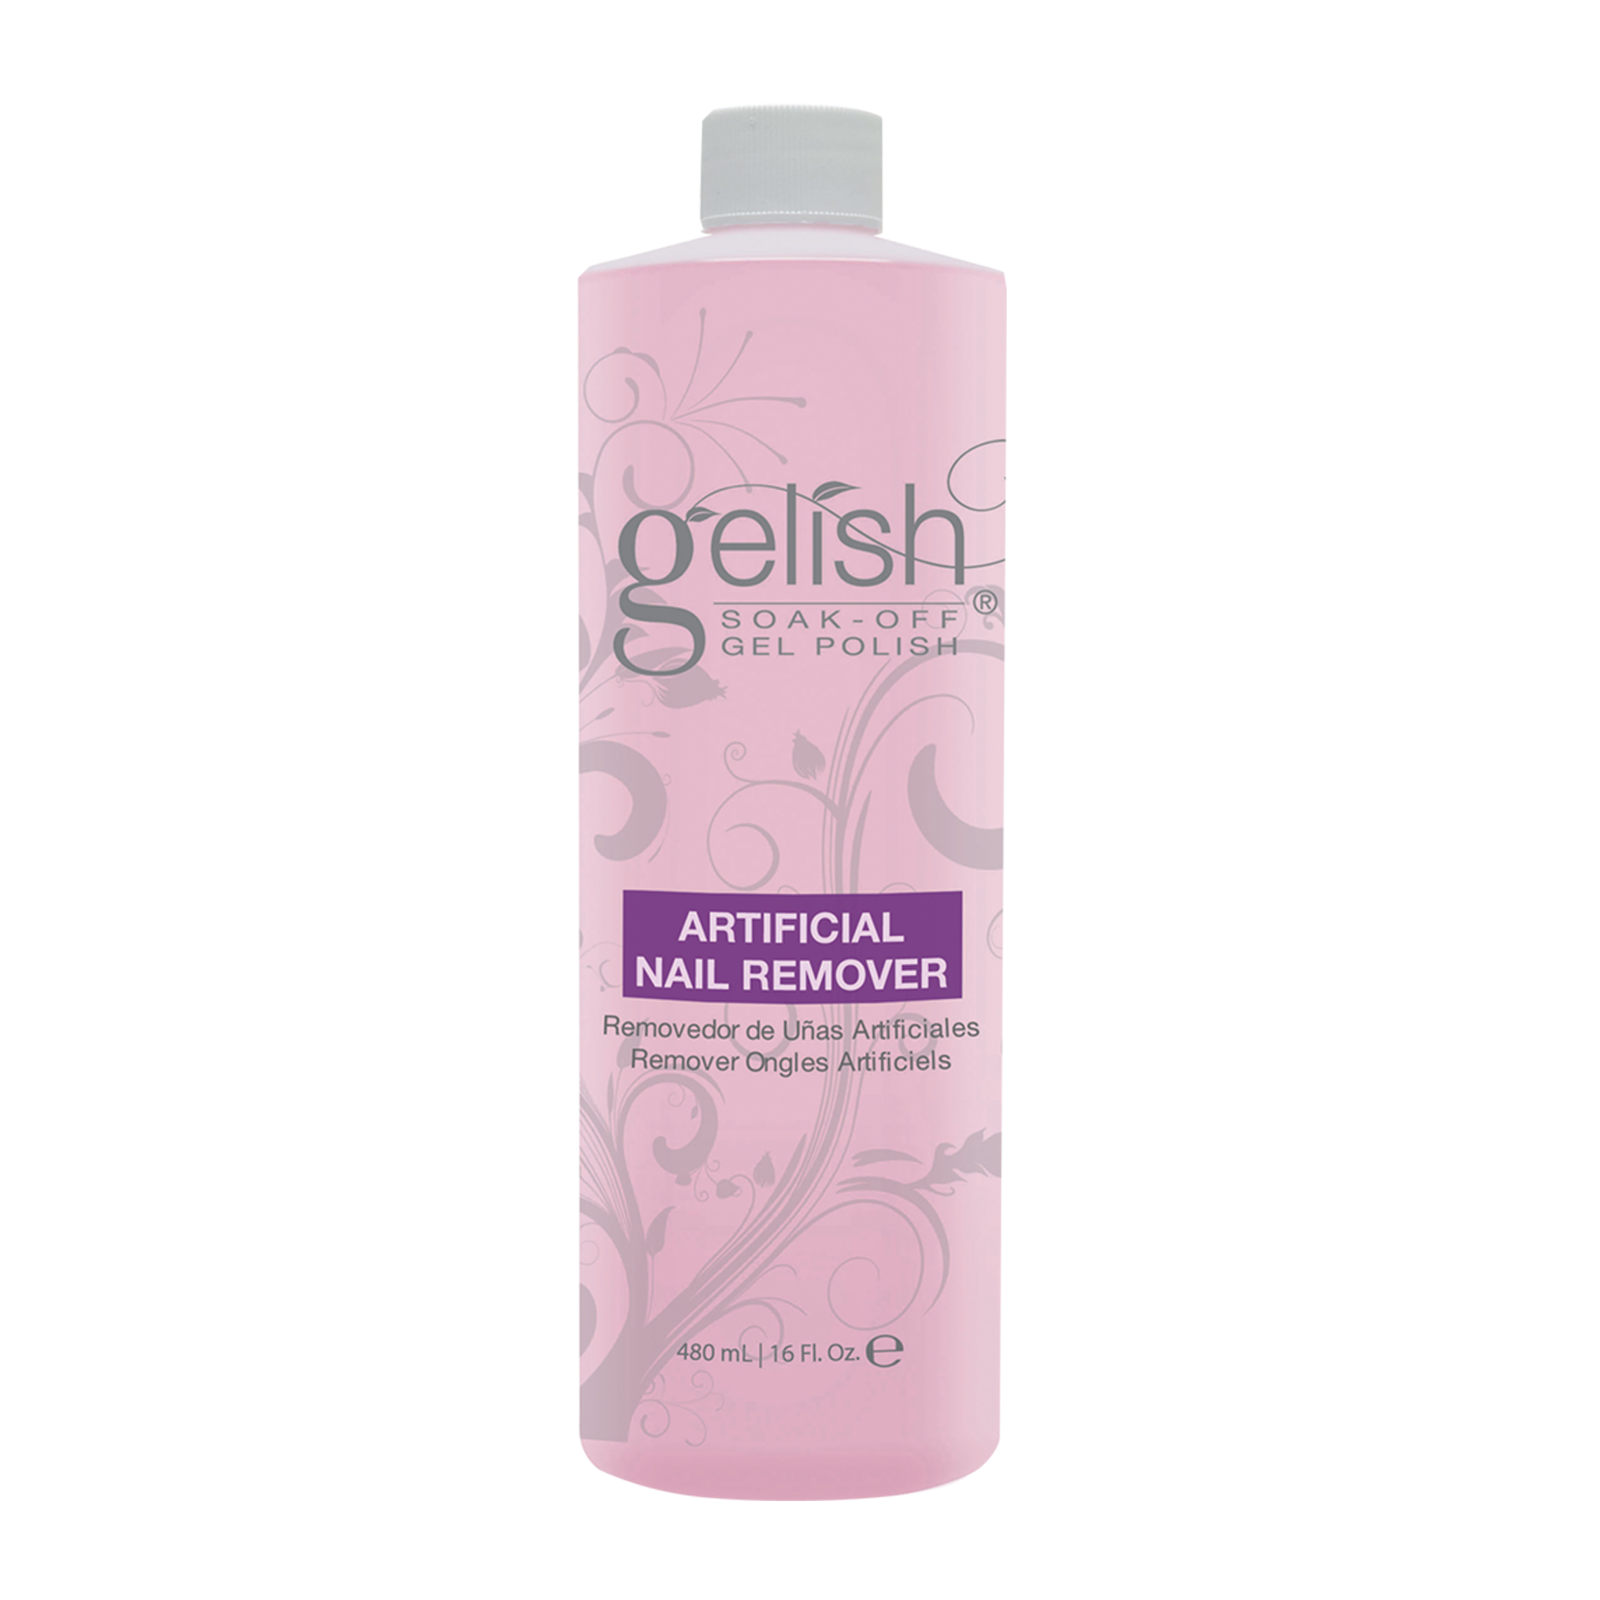 Gelish Artificial Nail Remover - Gelish | CosmoProf